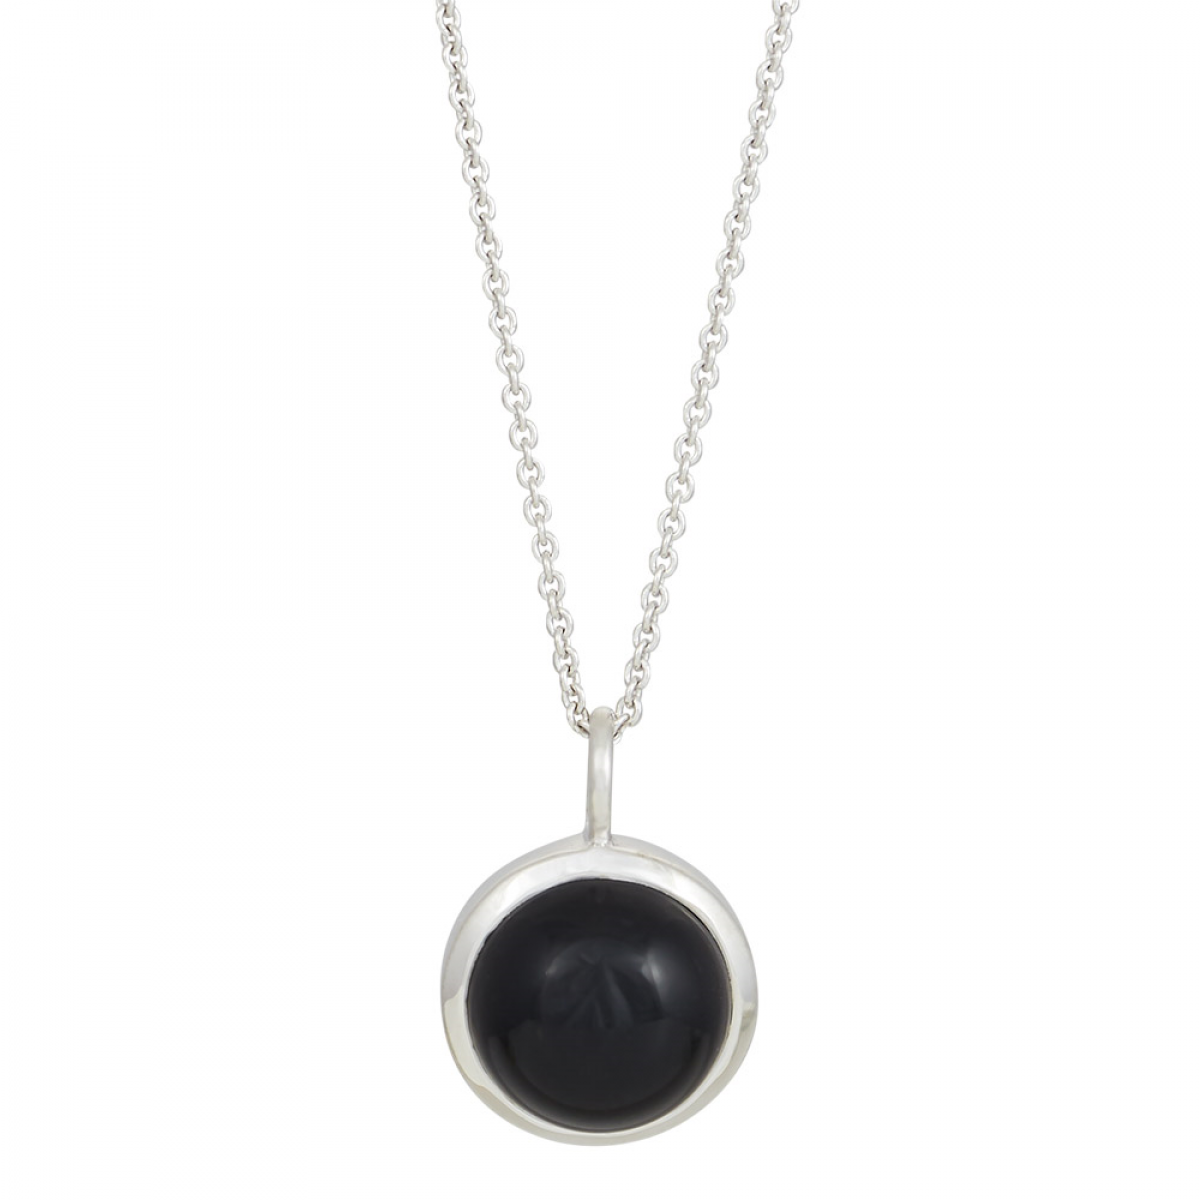 Nordahl Jewellery SWEETS Halskæde - sølv med sort onyx 11 mm